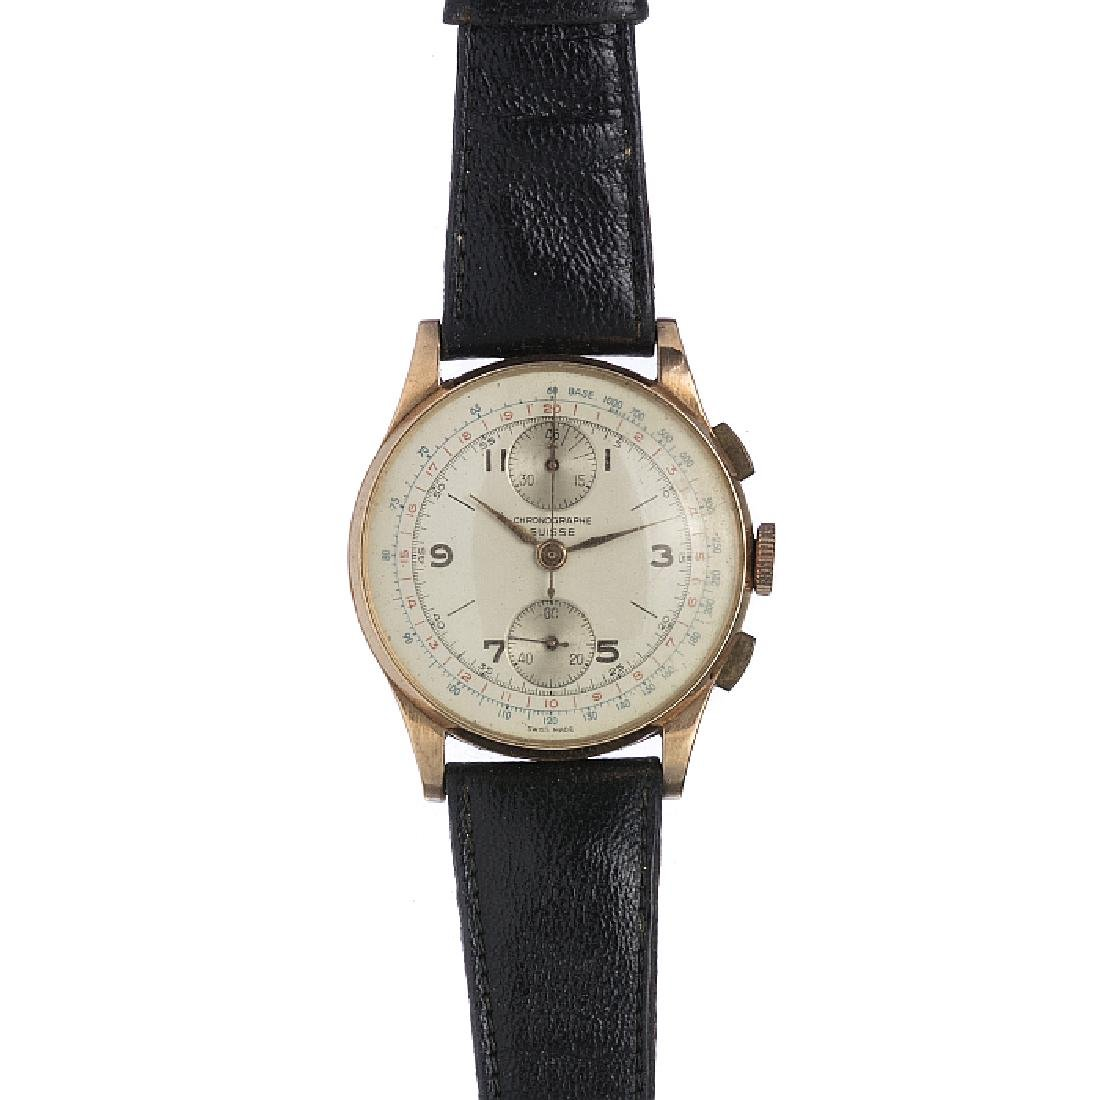 CHRONOGRAPHE SUISSE - Watch for men